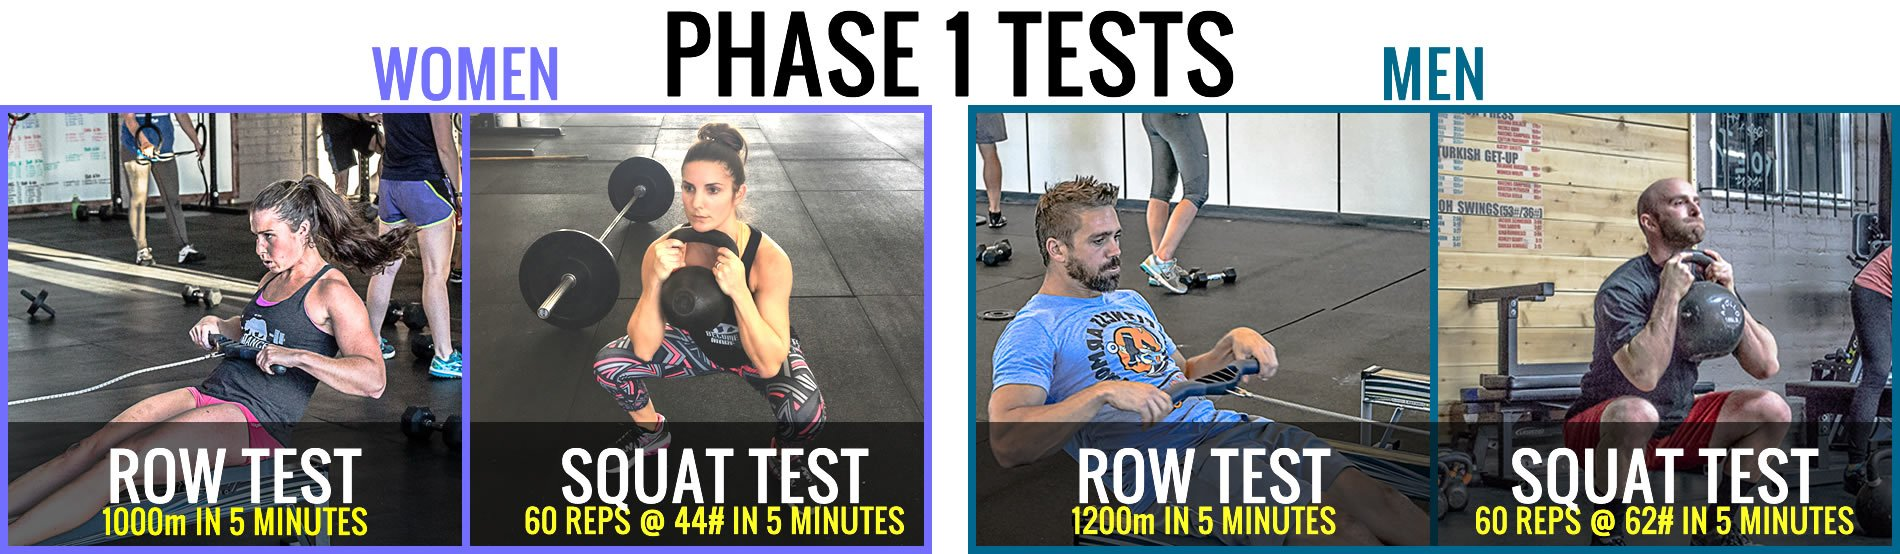 Phase 1 Tests